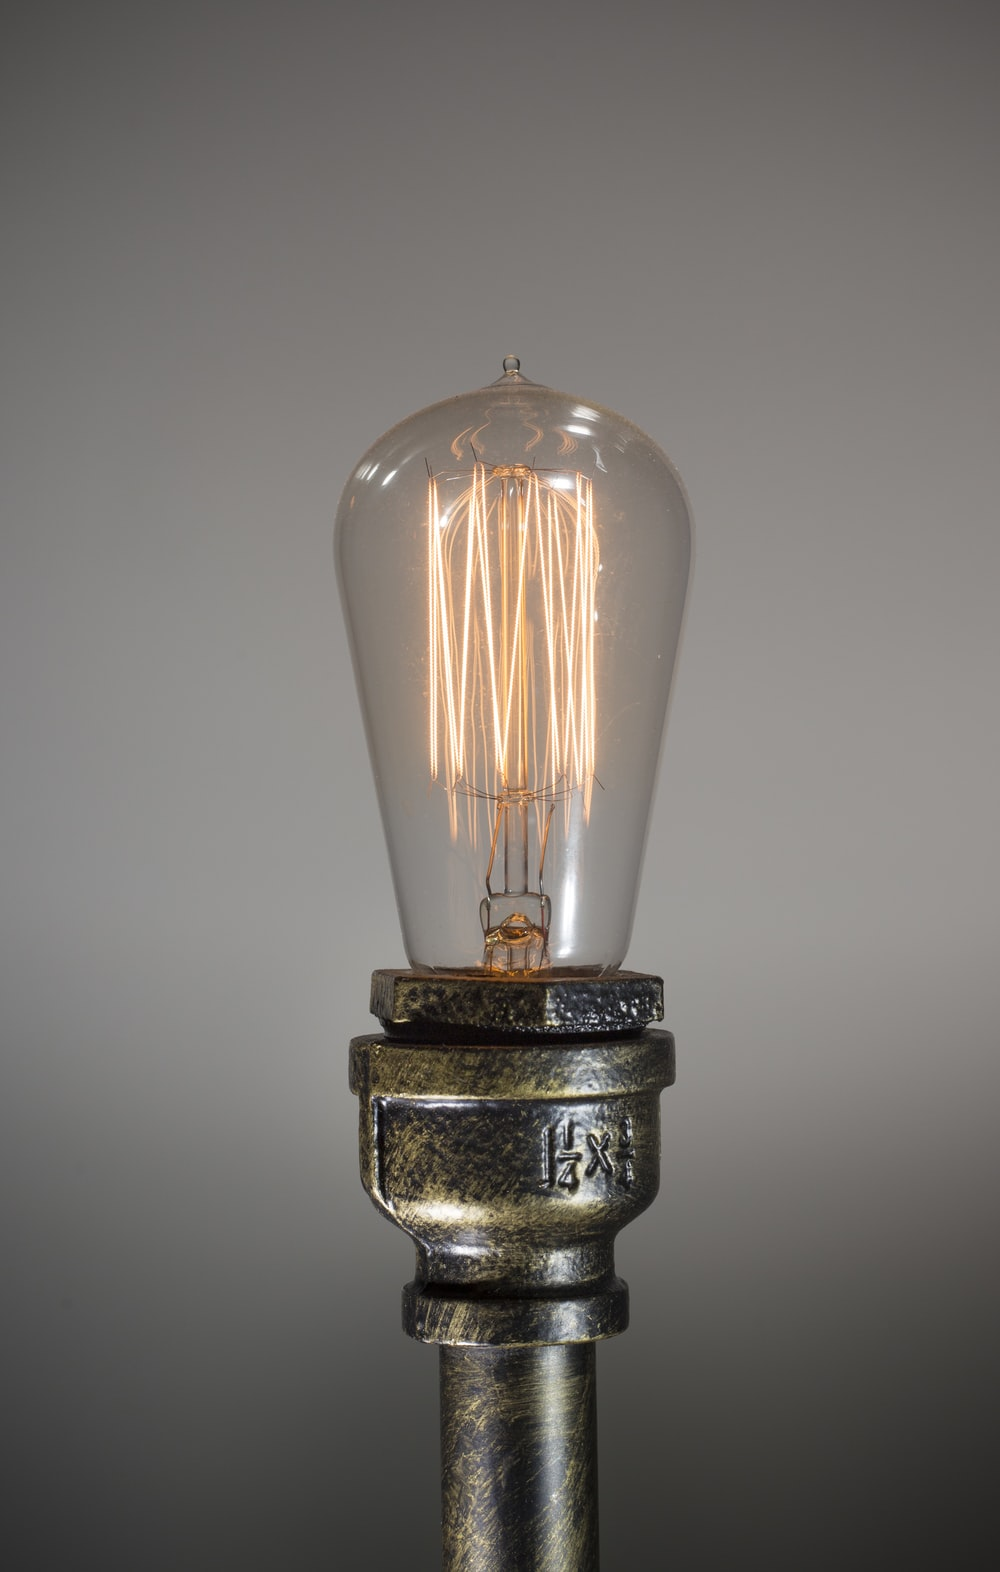 lighted light bulb